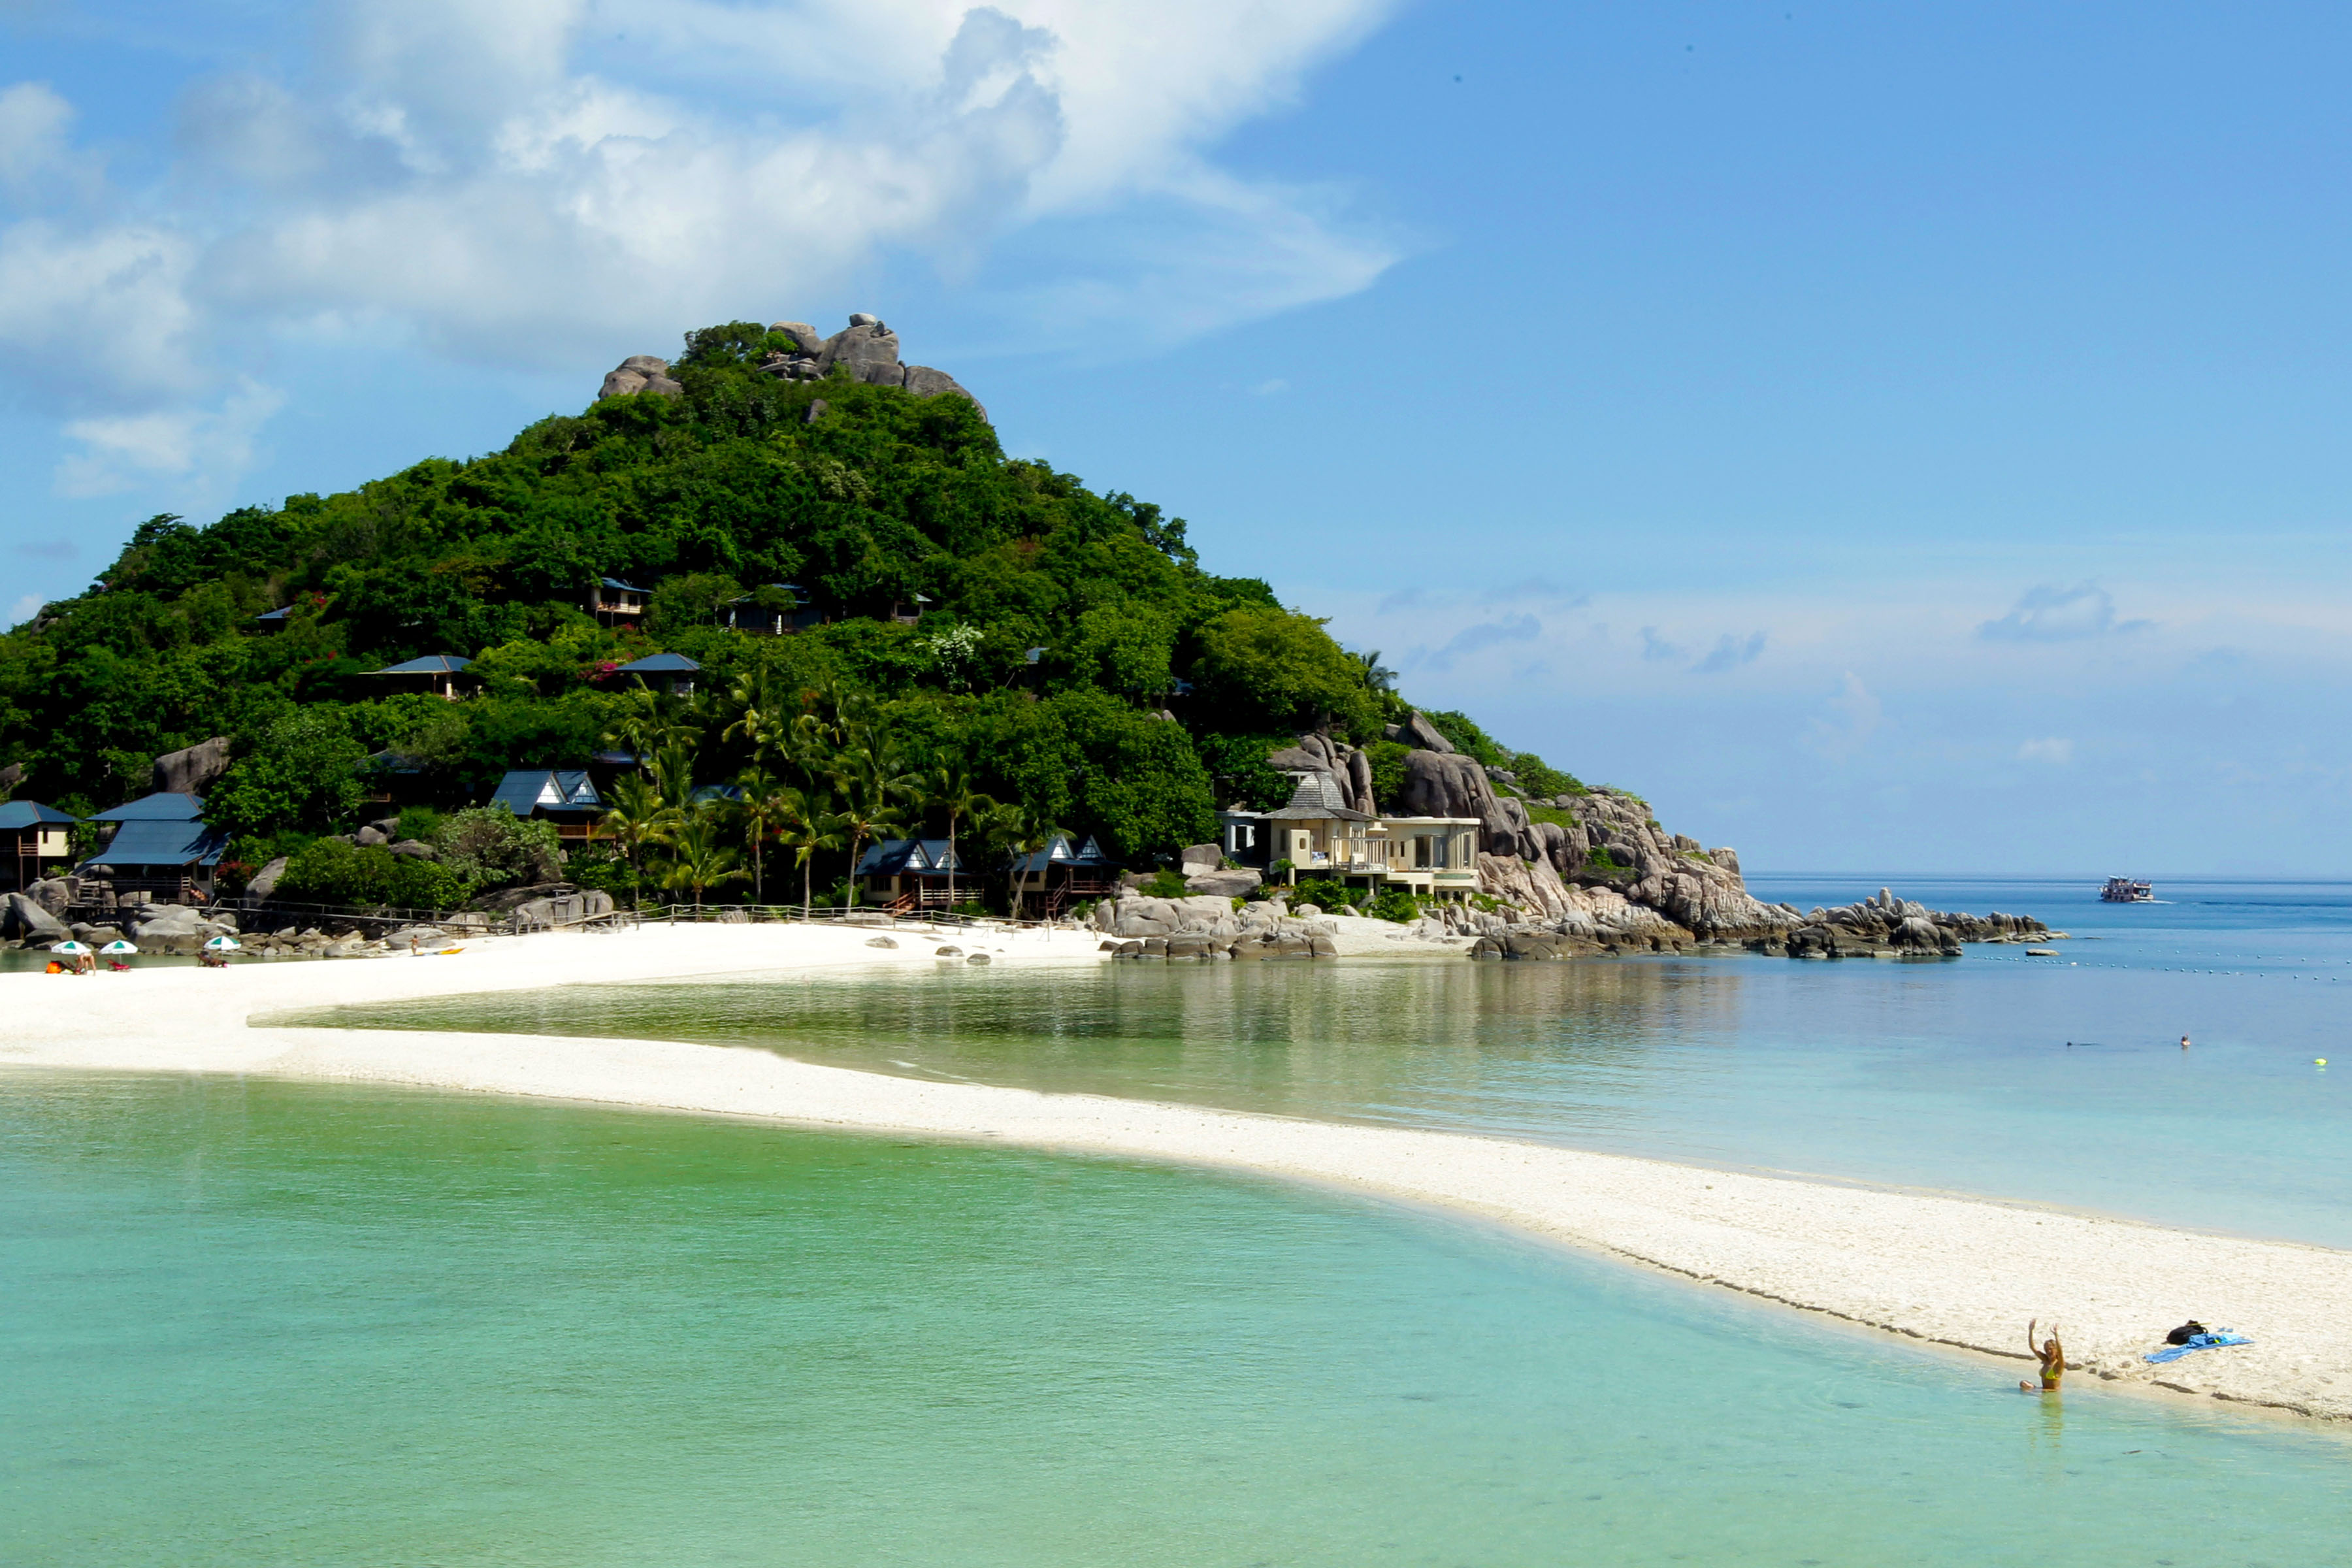 Sand bars join Koh Nang Yuan Islands Thailand